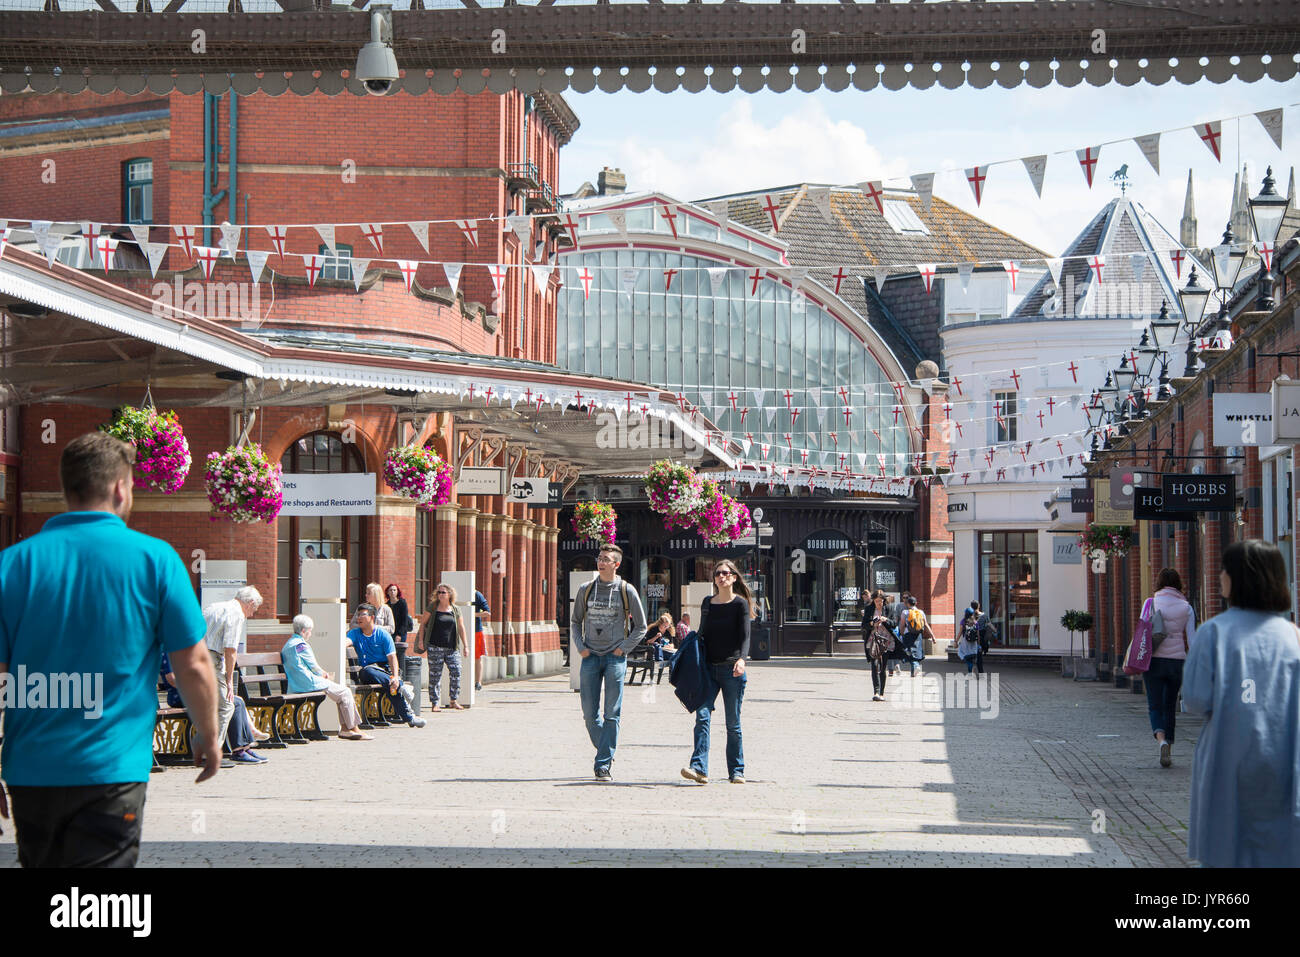 Victorian Windsor Royal Shopping Arcade, Goswell Hill, Windsor, Berkshire, England, United Kingdom - Stock Image